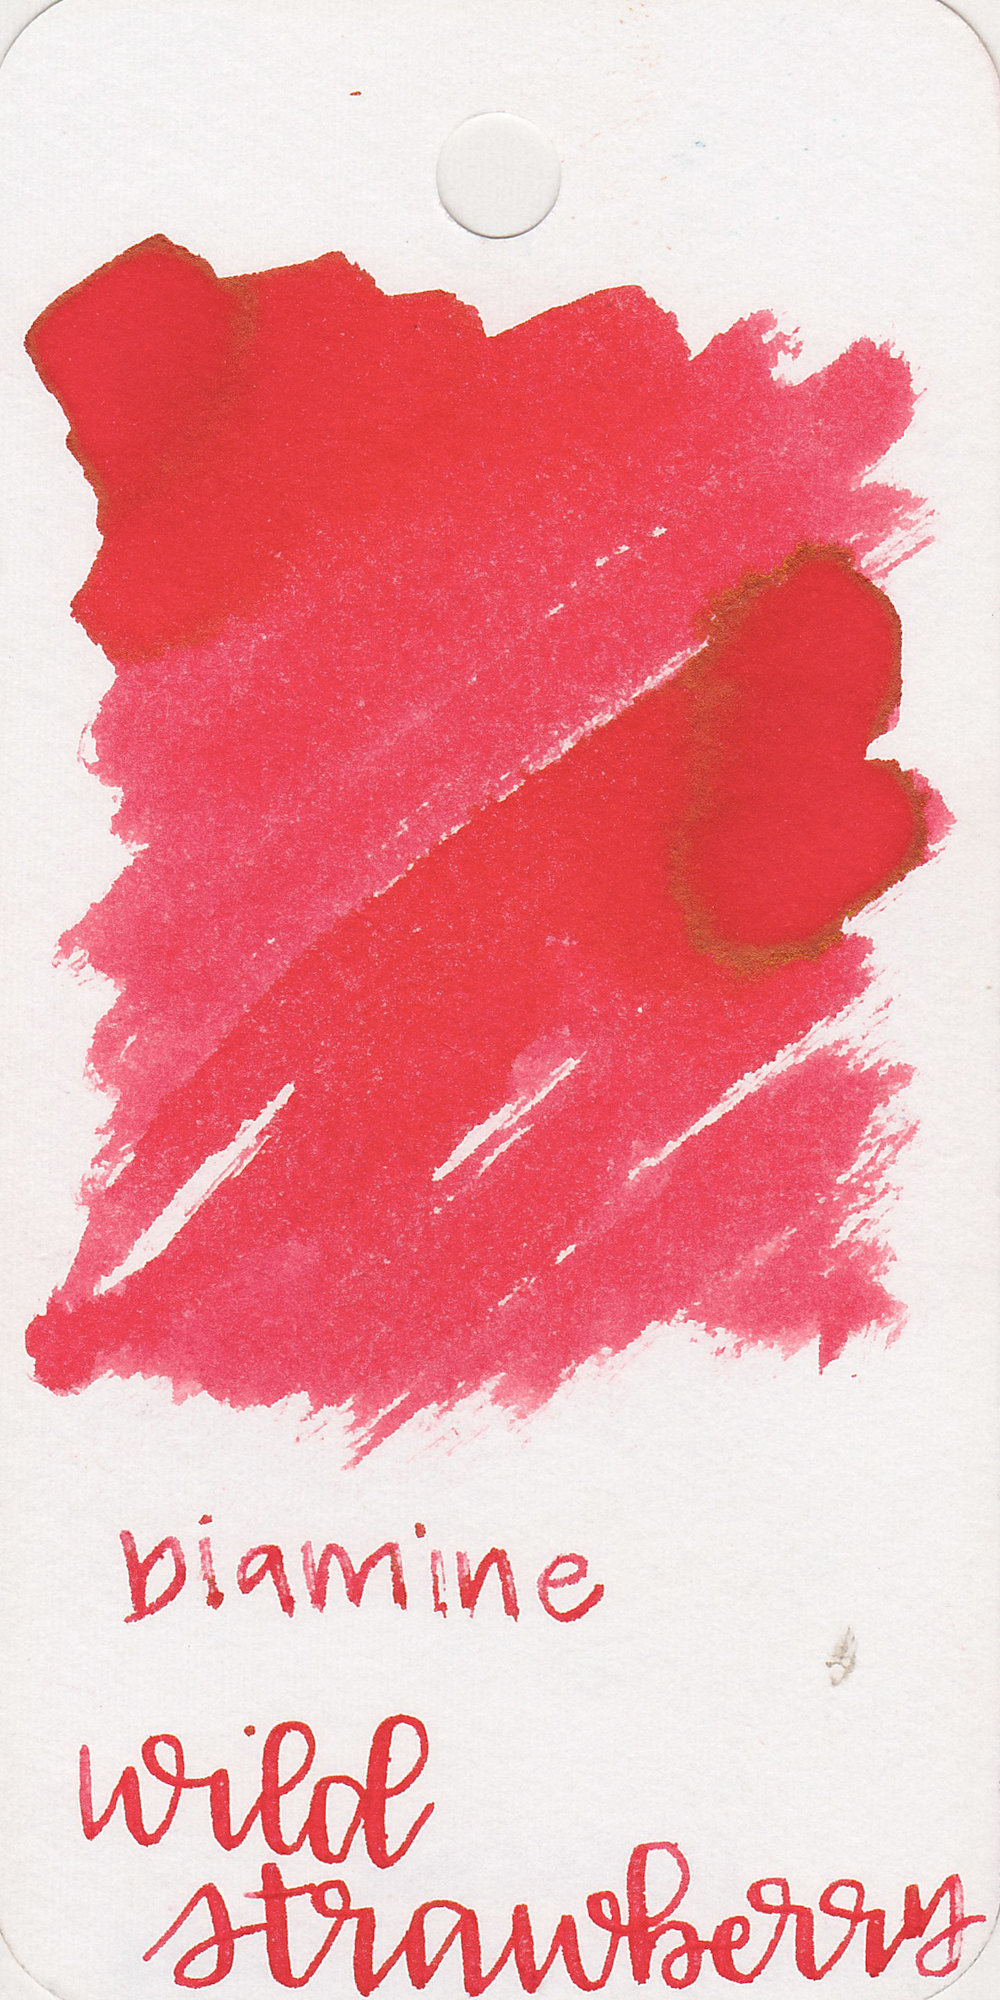 The color: - Wild Strawberry is a light, bright red. I wouldn't say it's a strawberry red since this is much brighter and pinker than strawberries, but it's a pretty summer red.